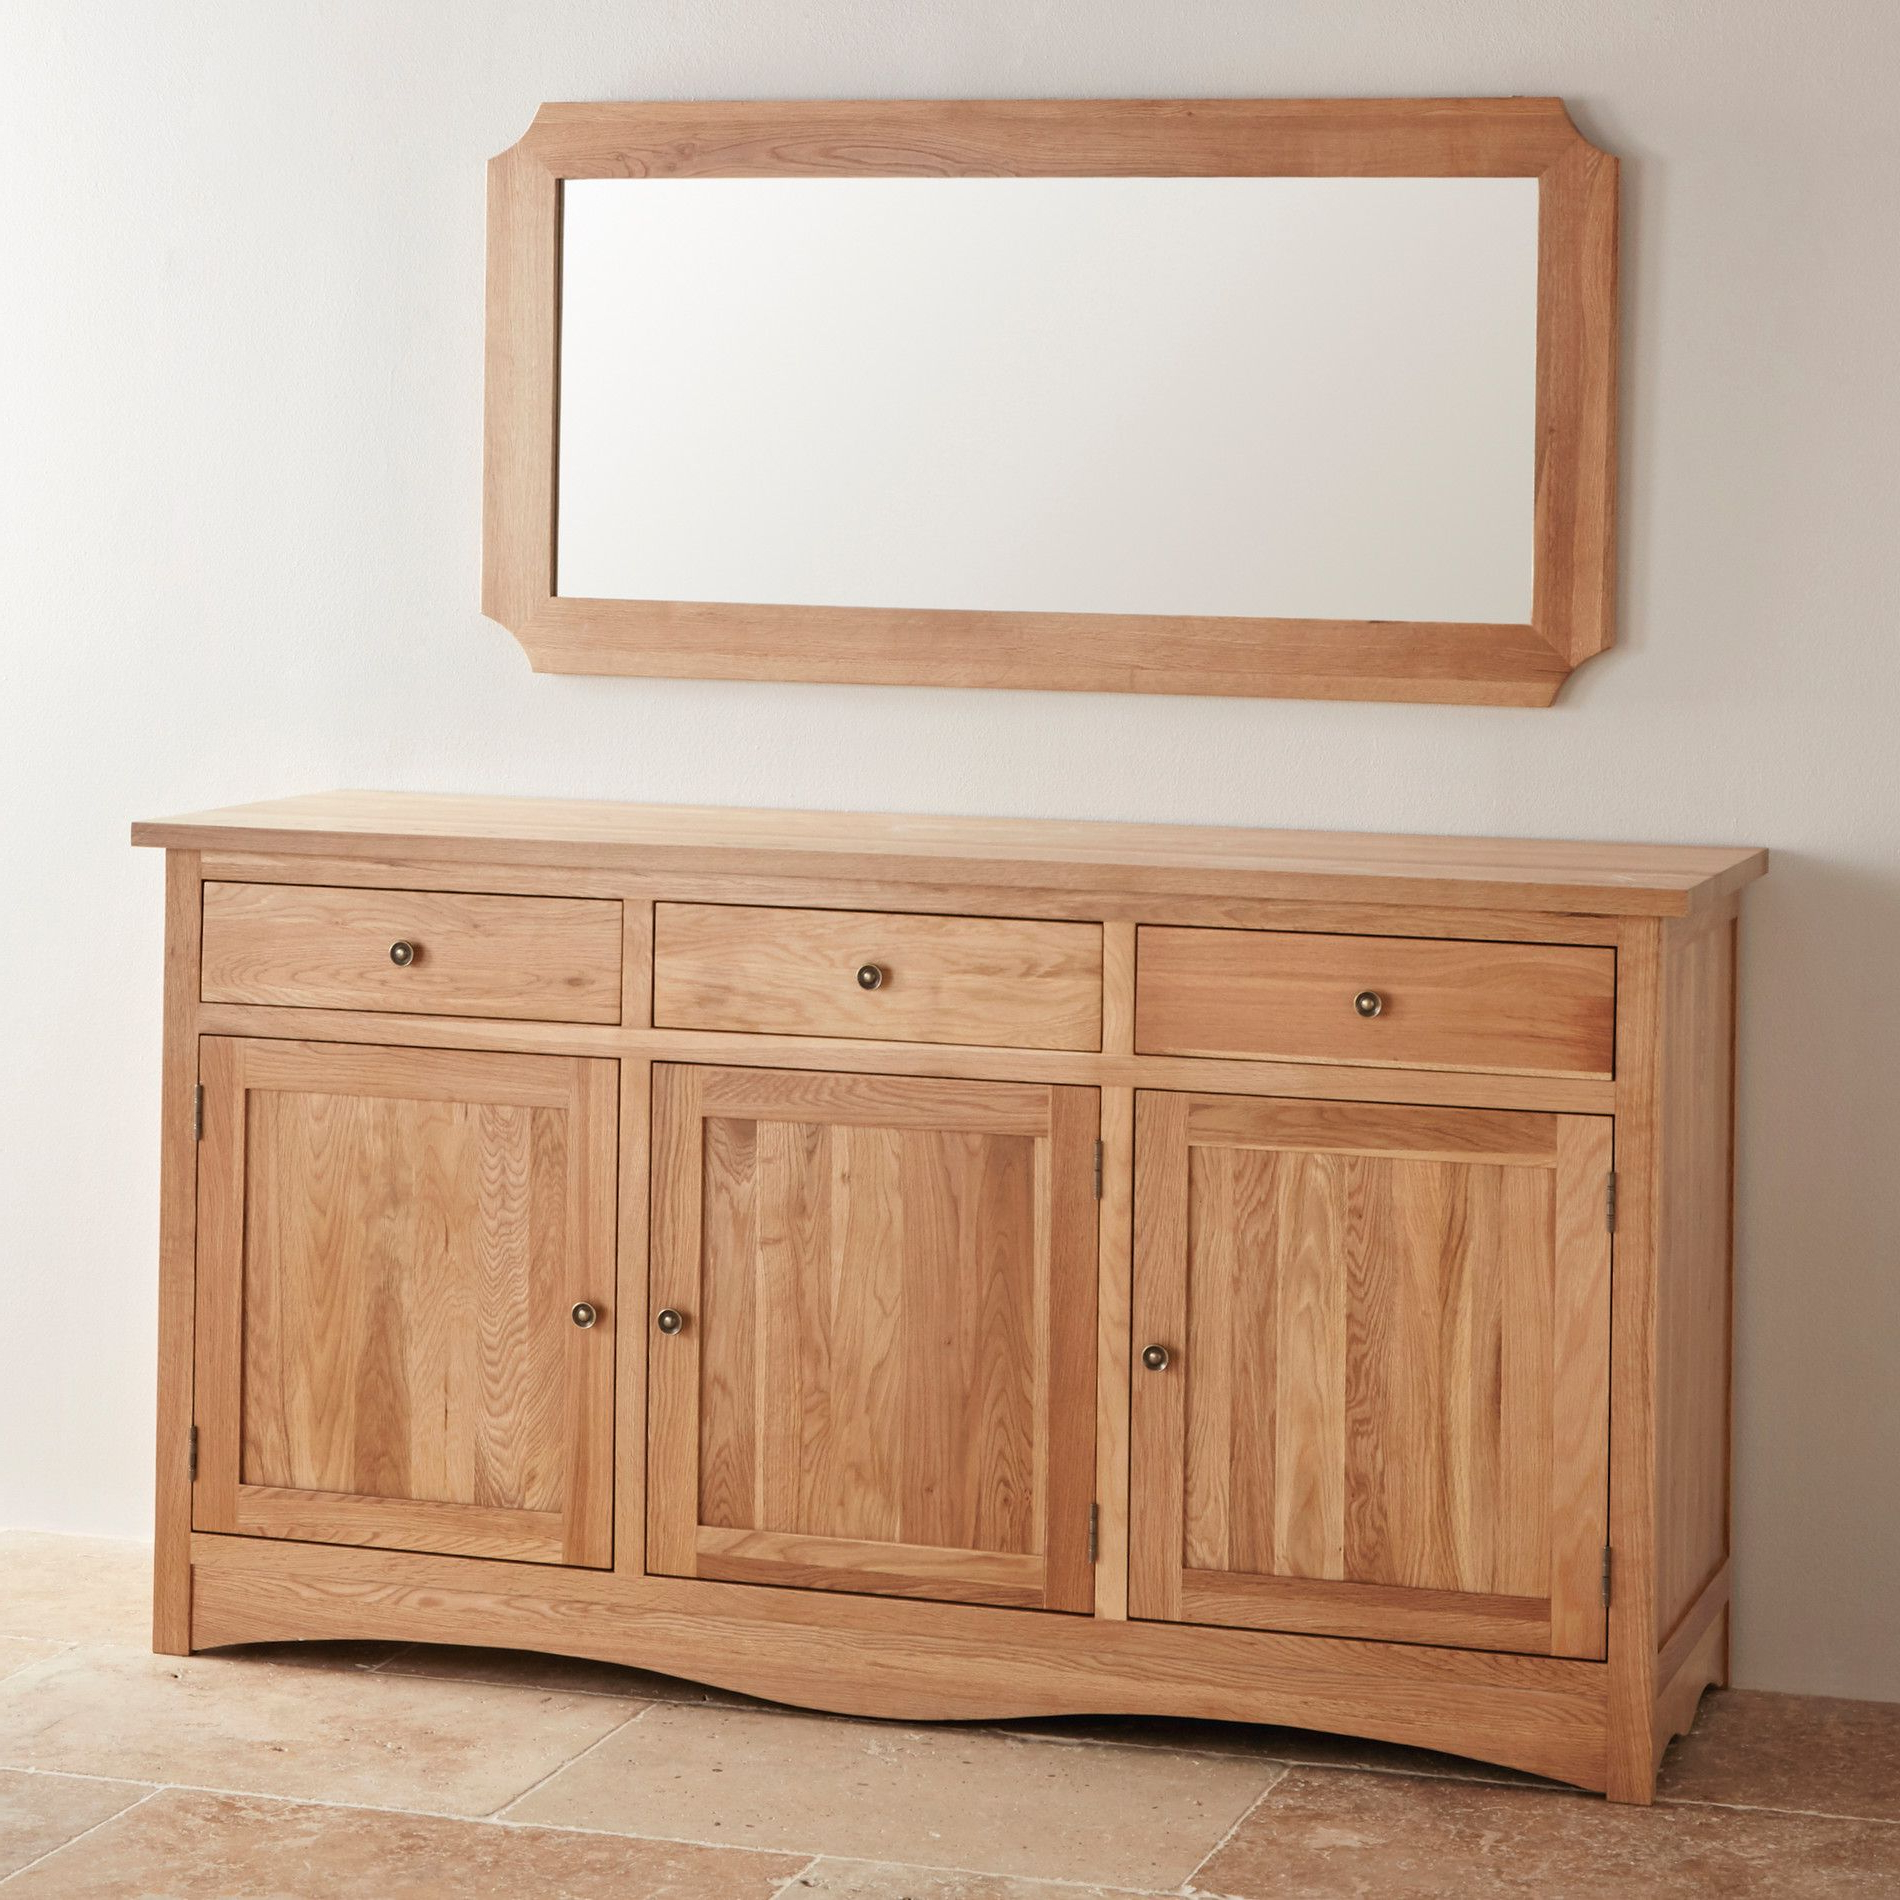 Wayside Intended For 2019 Oak Wall Mirrors (View 18 of 20)